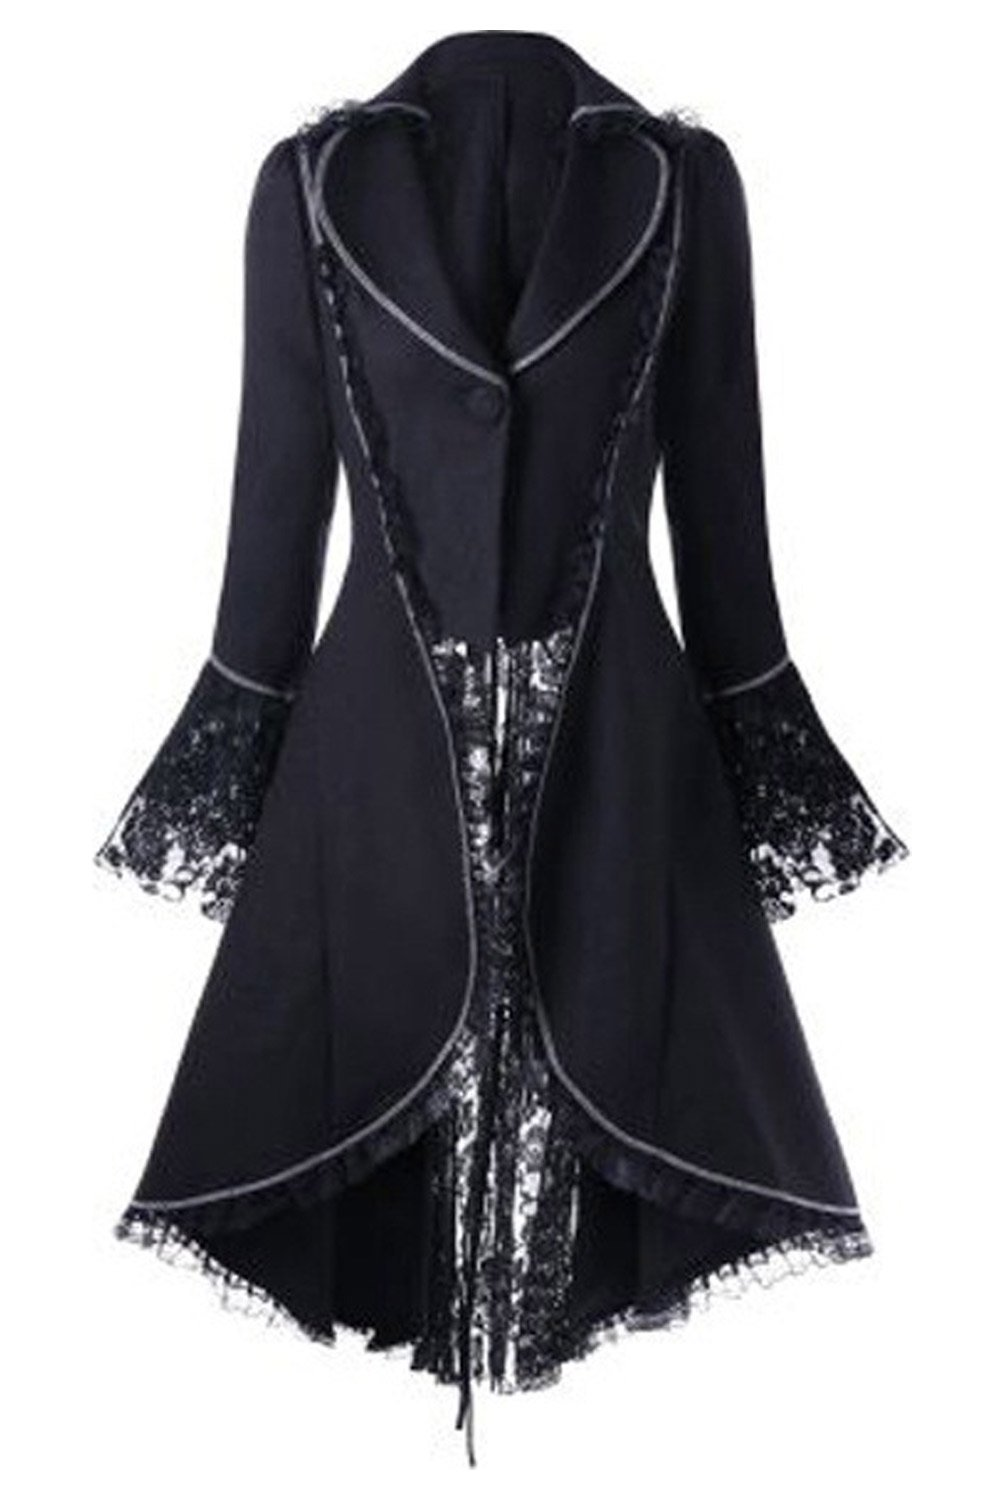 CHECKIN Women's Gothic Tailcoat Steampunk Jacket Tuxedo Suit Victorian Costume Coat (X-Large, Black) by CHECKIN